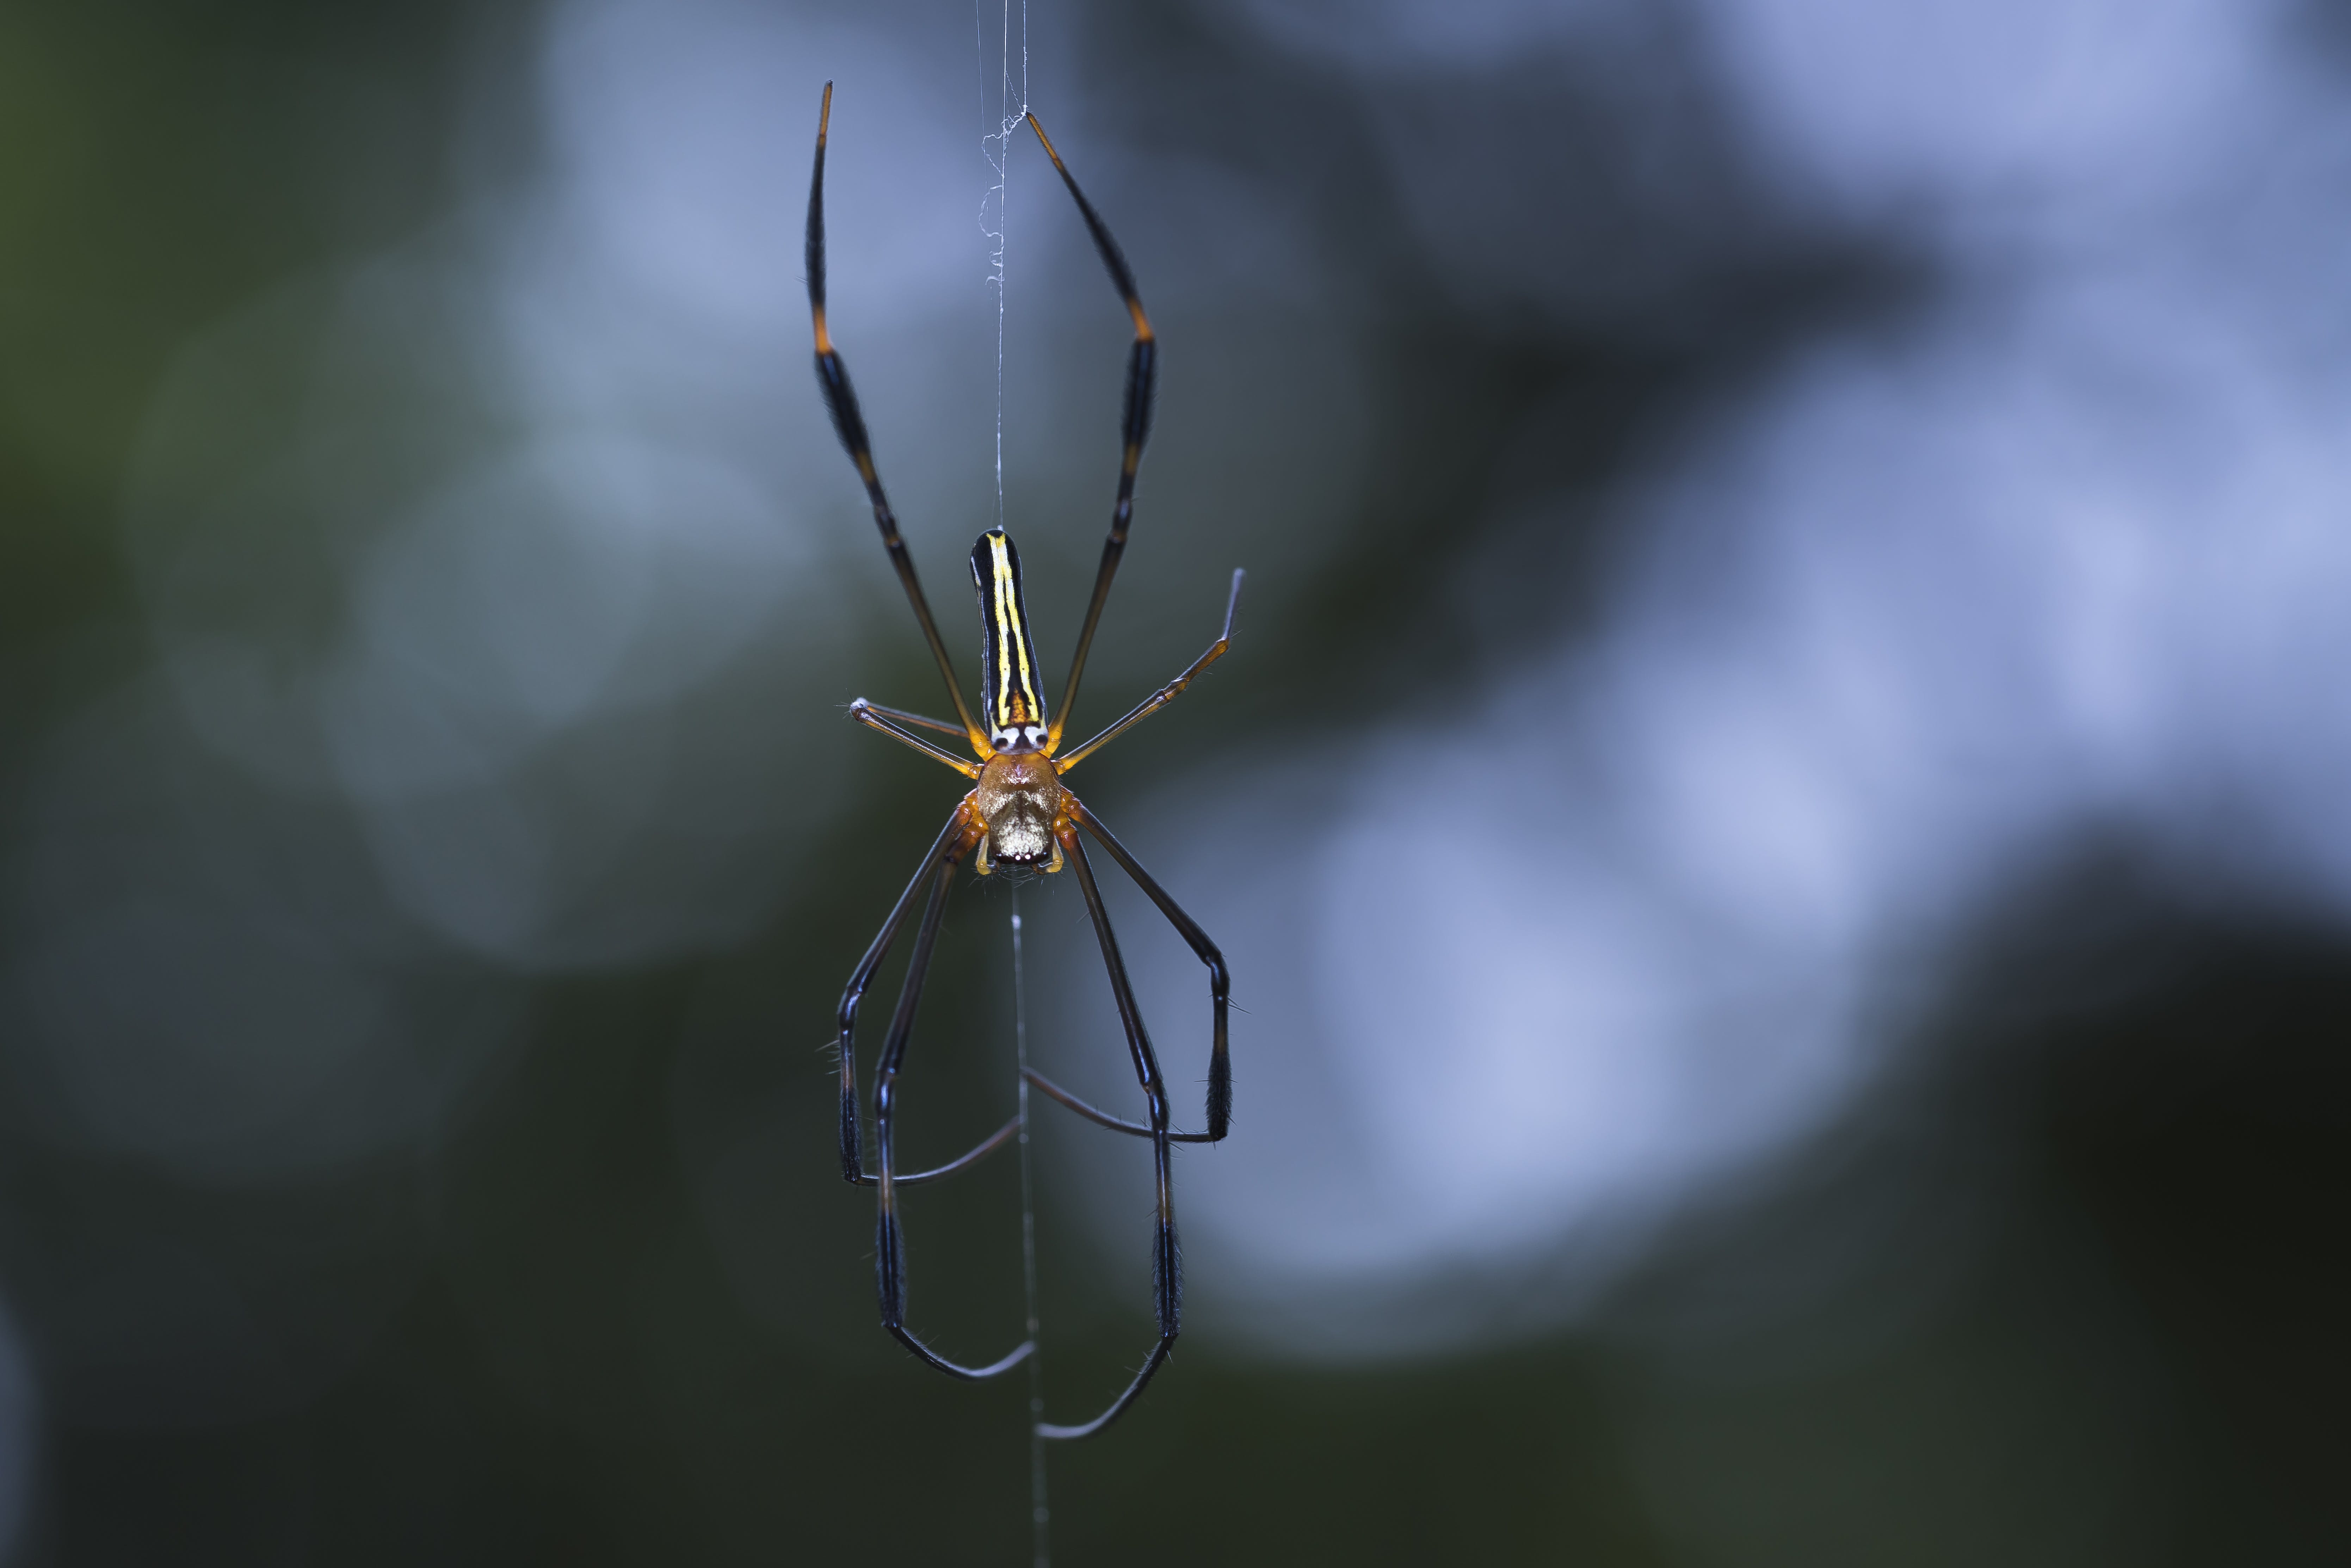 Close-up Photography Of Spider